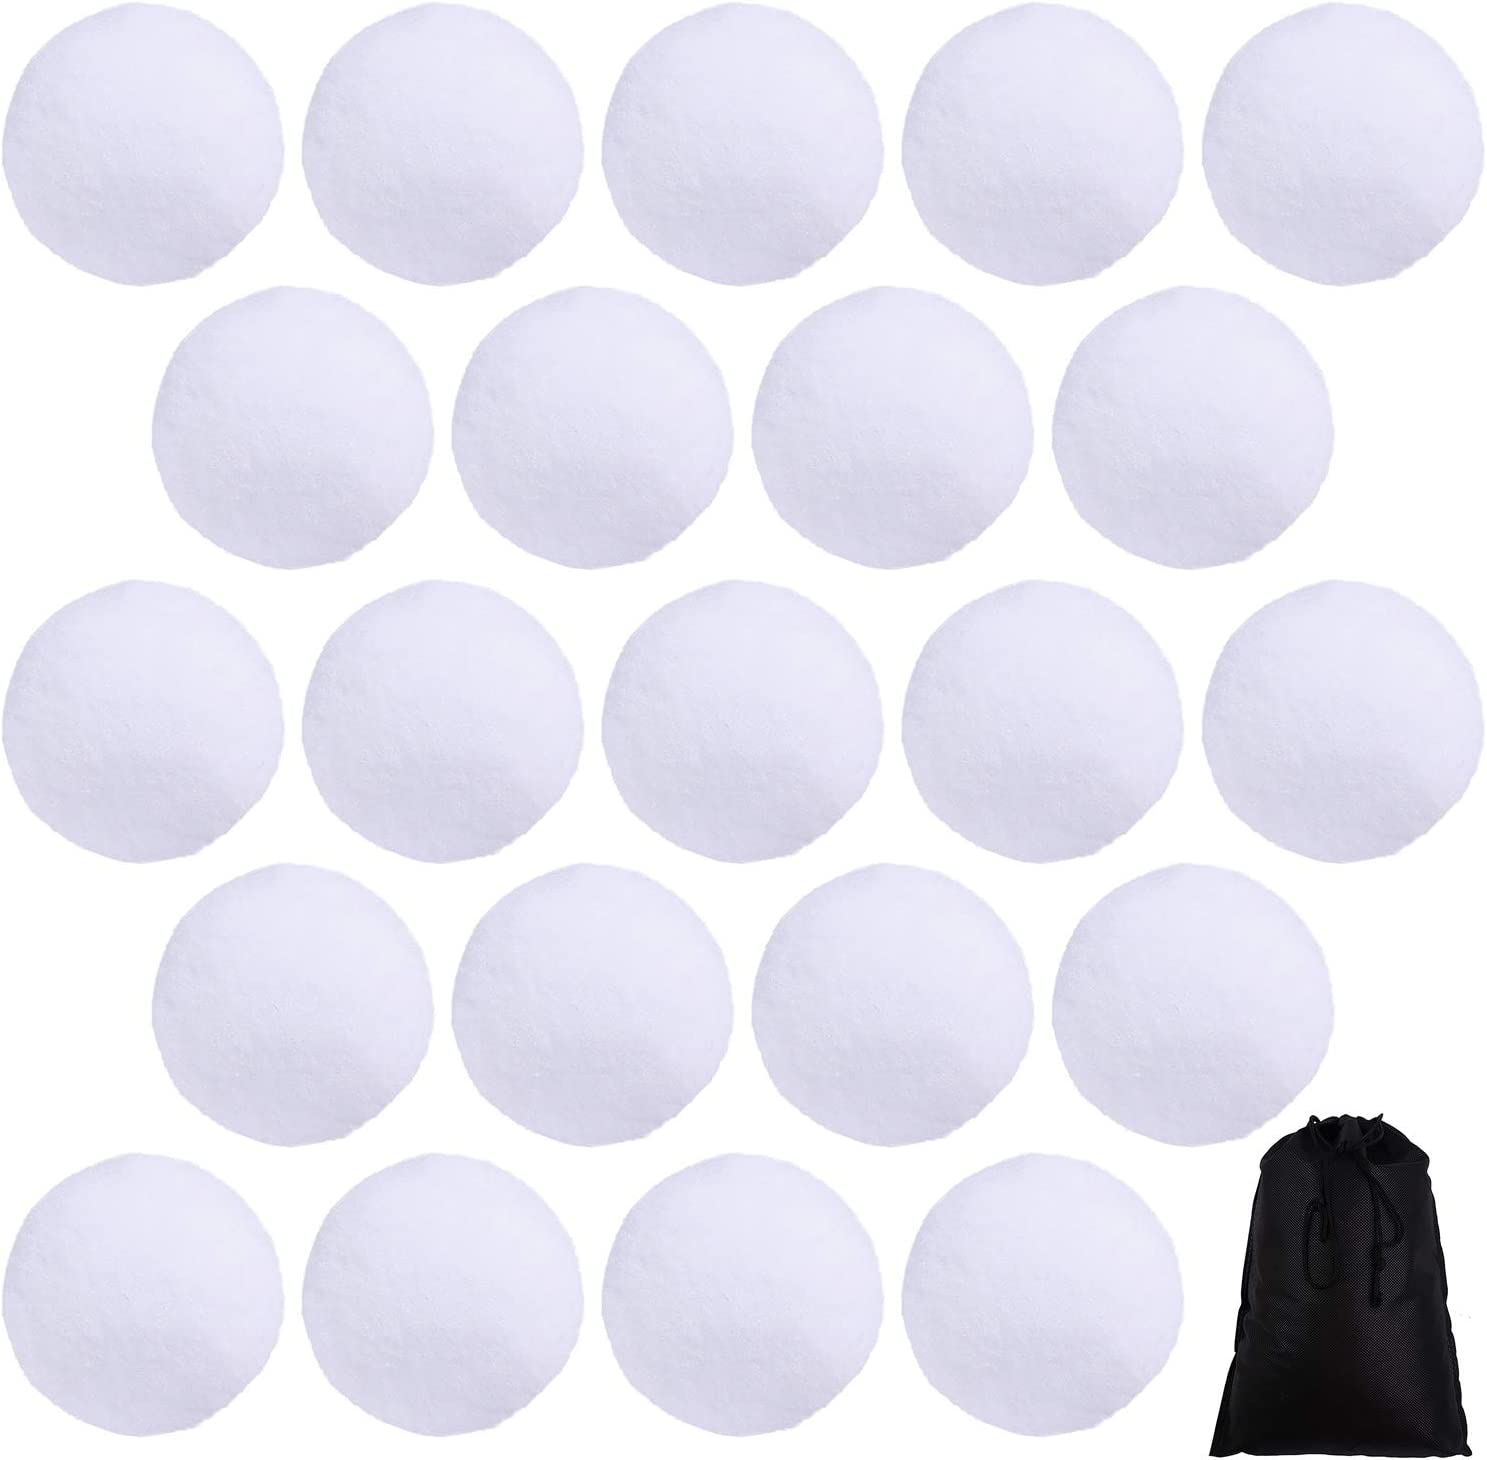 Soft Fluffy White Indoor Snowballs for Indoor Snowball Fights